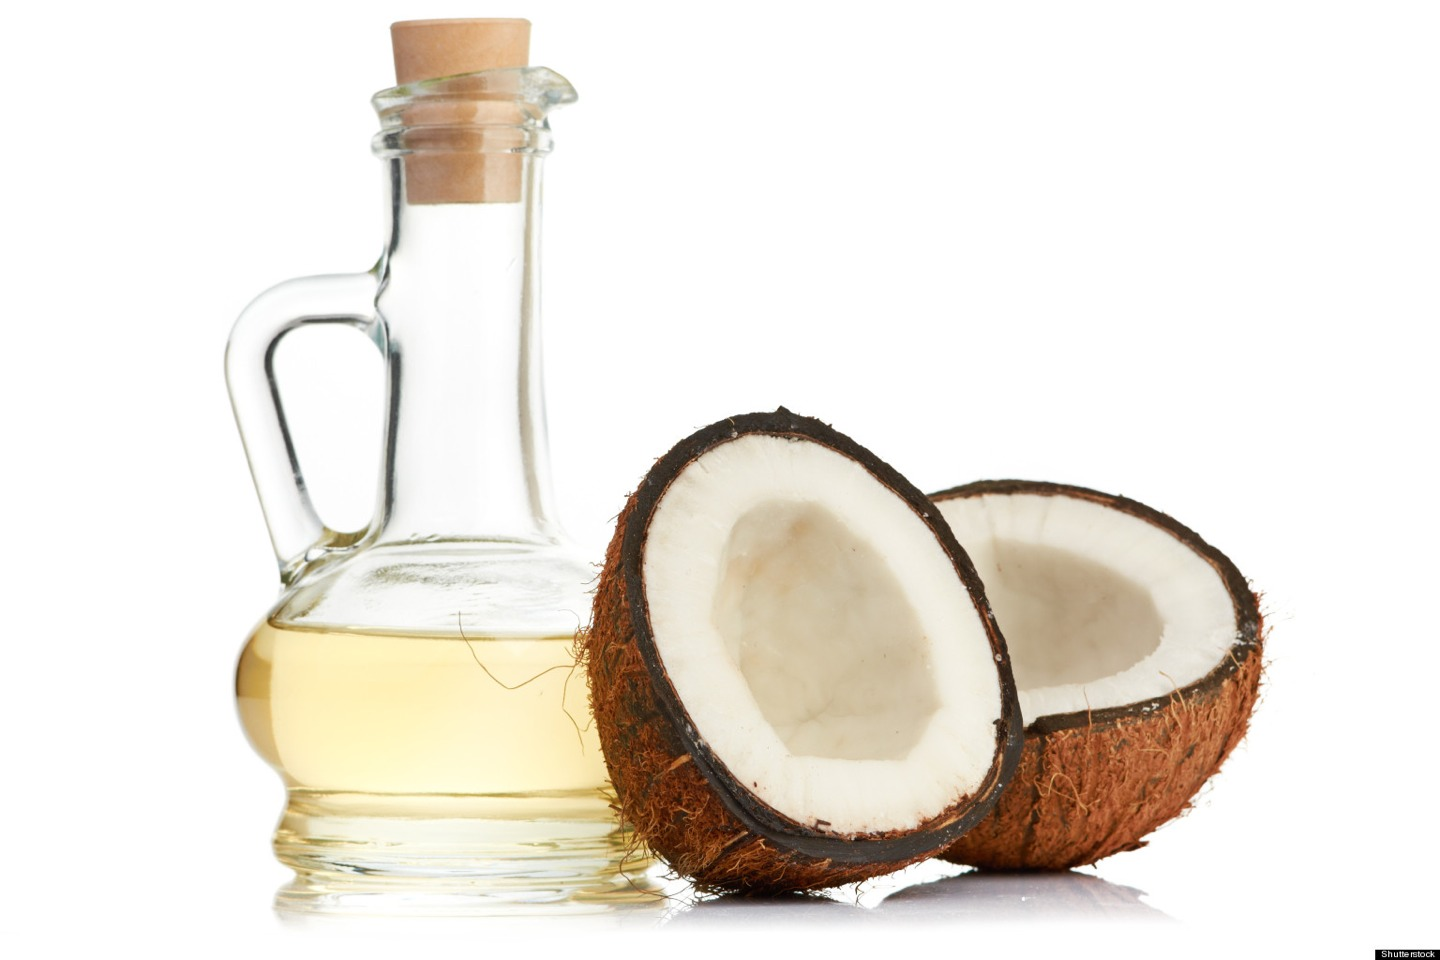 Extra tips:   Rub the oil into your scalp to help with hair growth!   Make sure you get unrefined, virgin coconut oil!